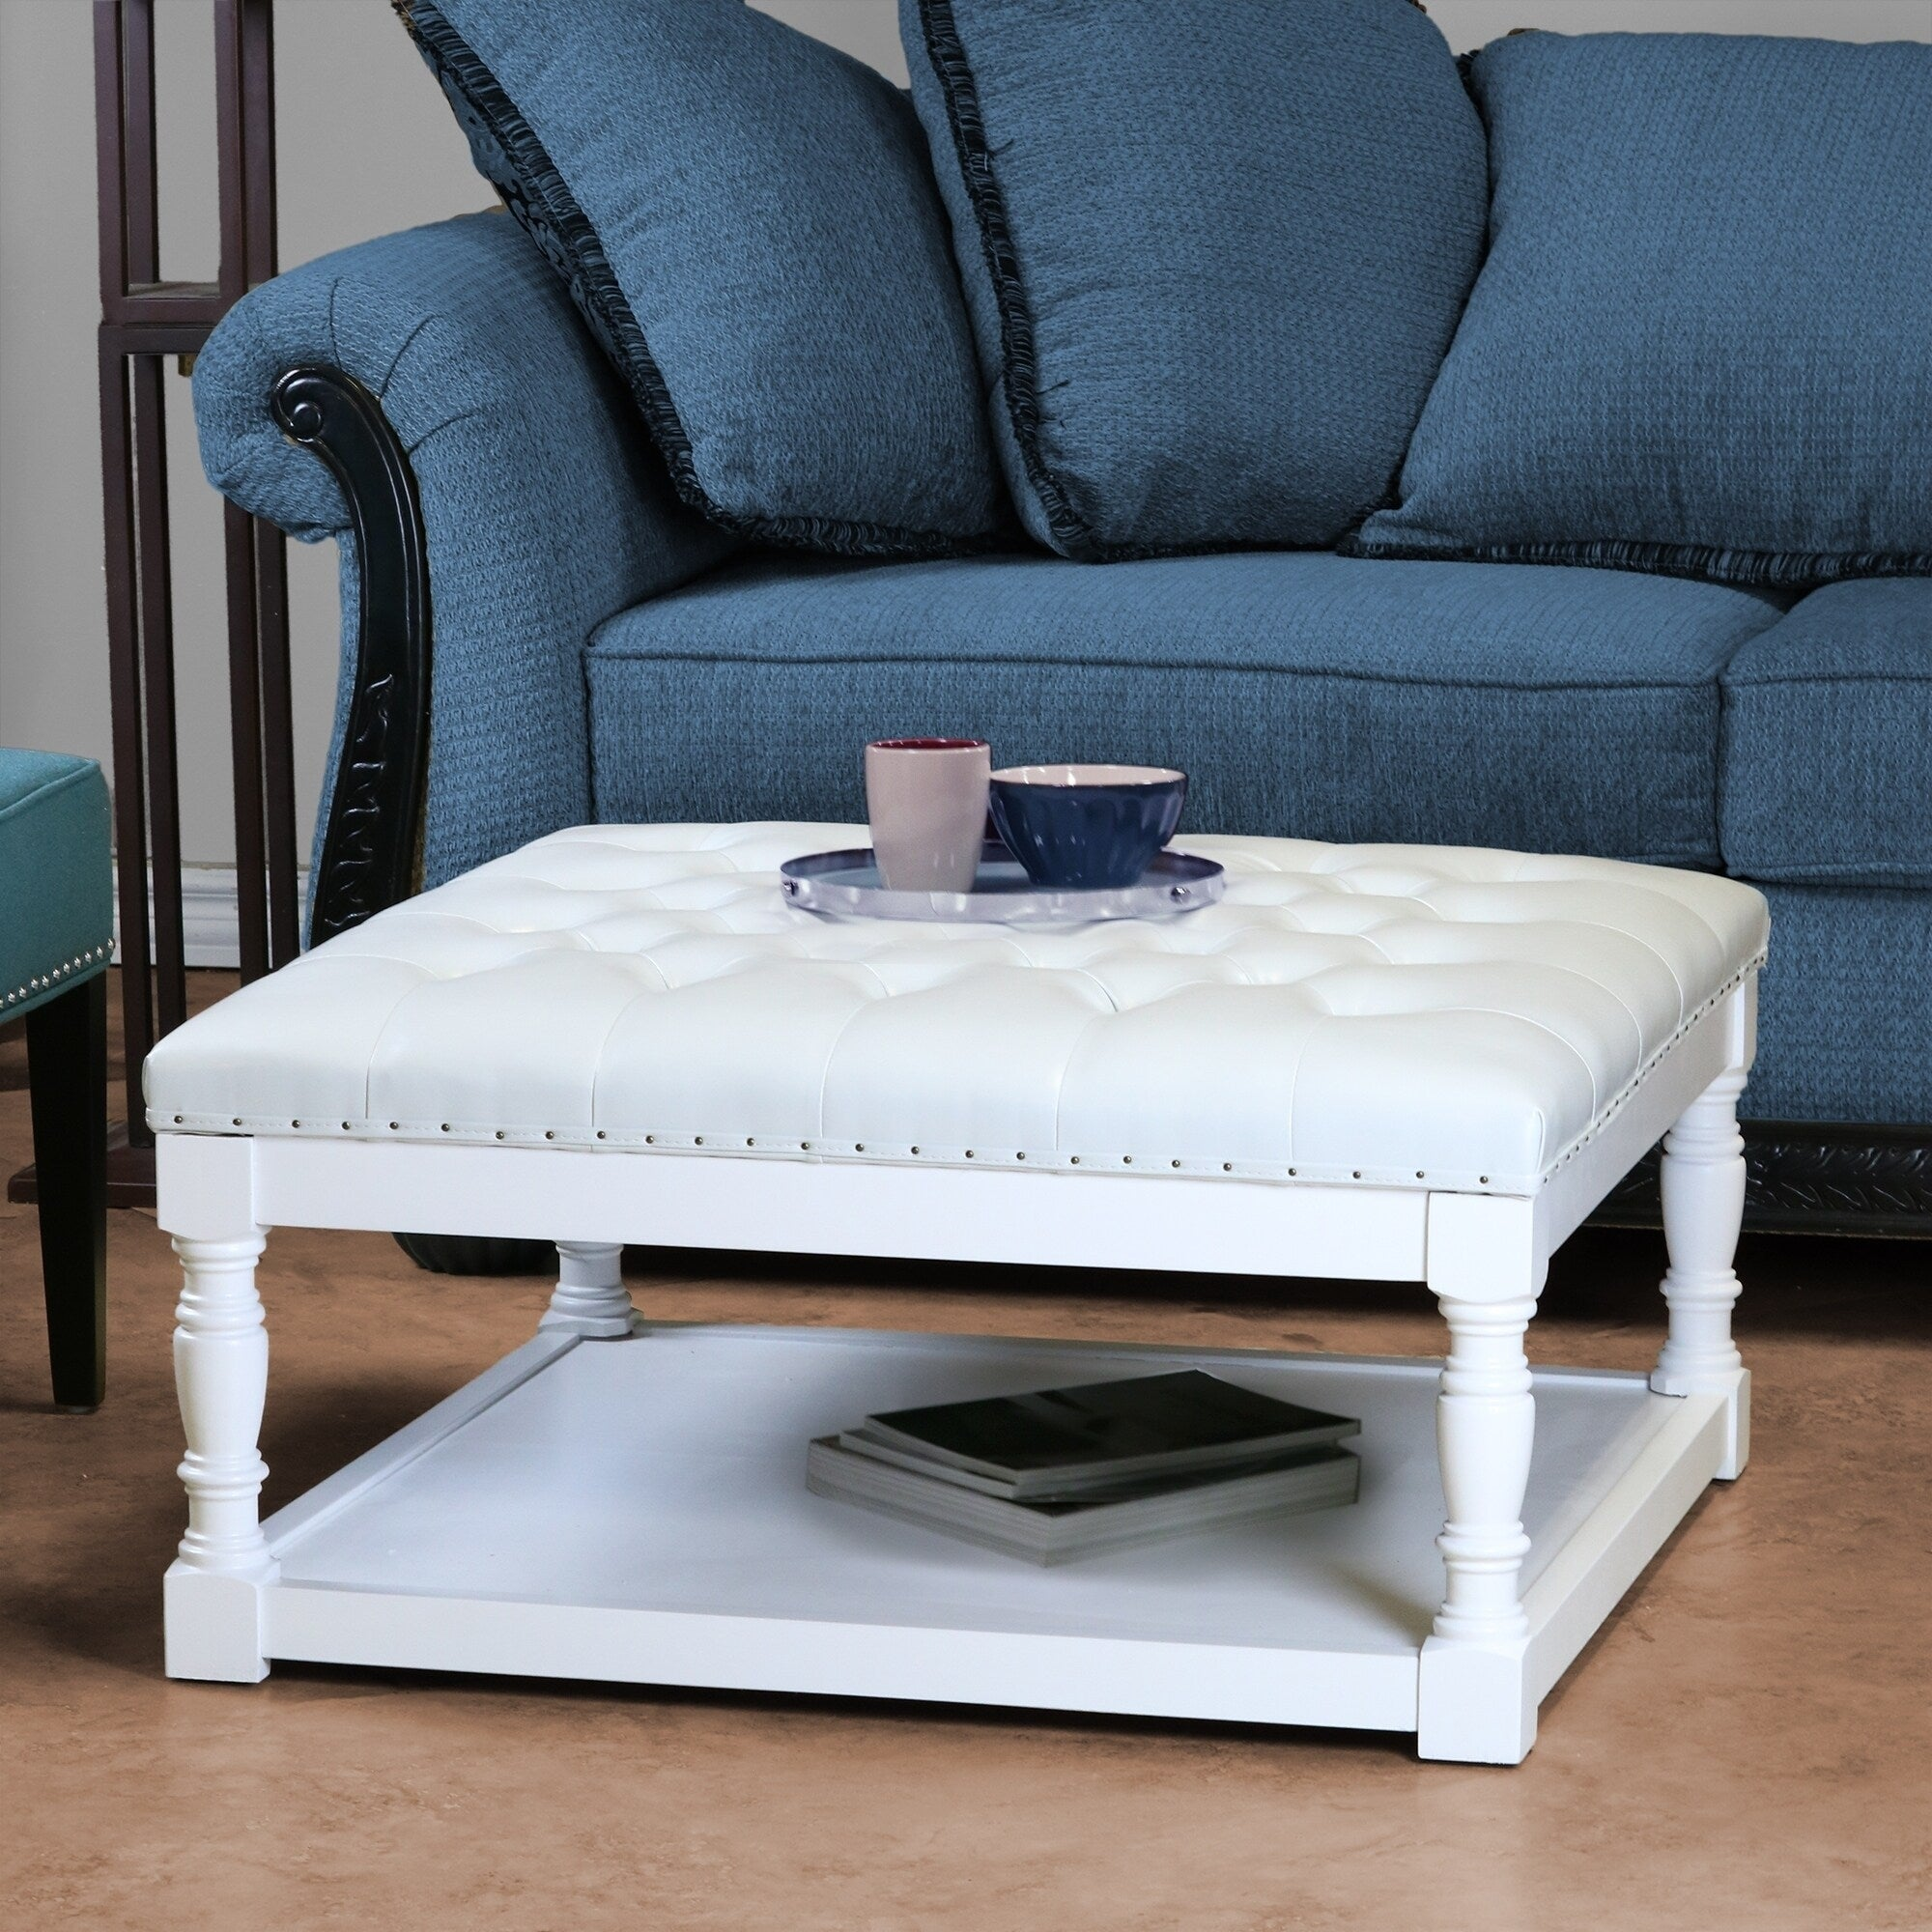 Cairona Tufted Pu Leather 34 Inch Shelved Ottoman Table More Colors Overstock 30562434 White